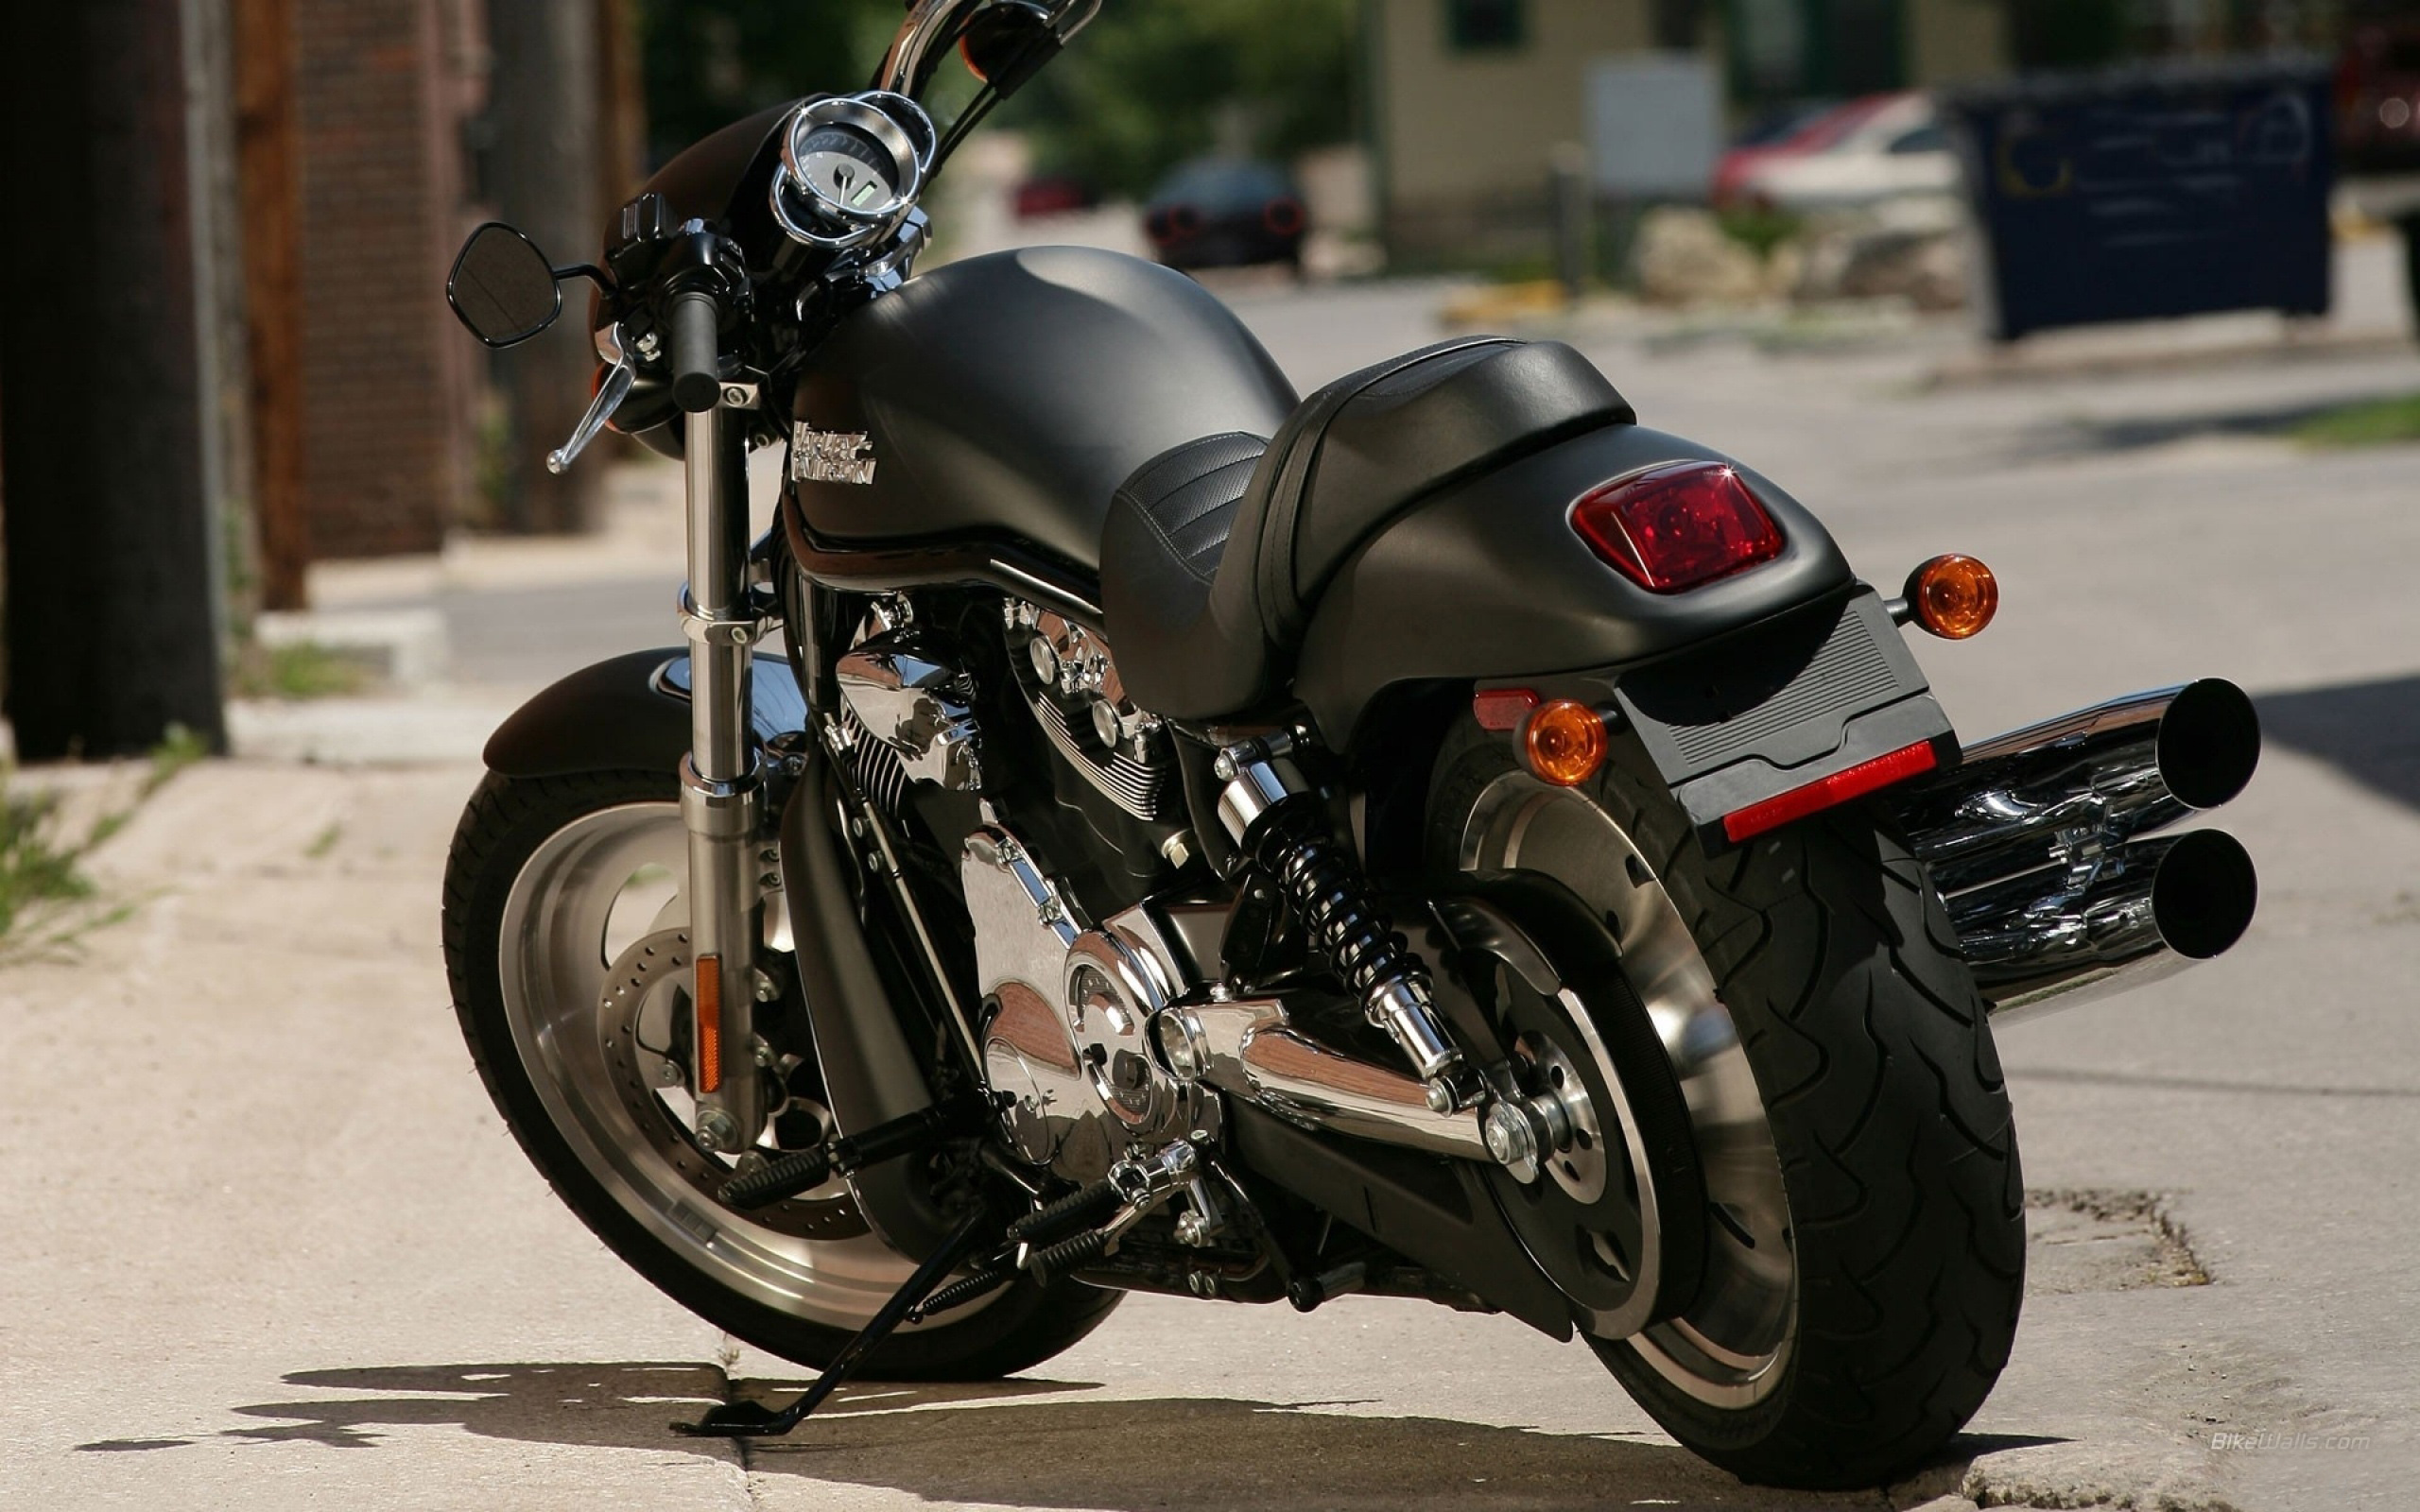 ... Harley Davidson bike by applying the Free Harley Davidson Wallpapers